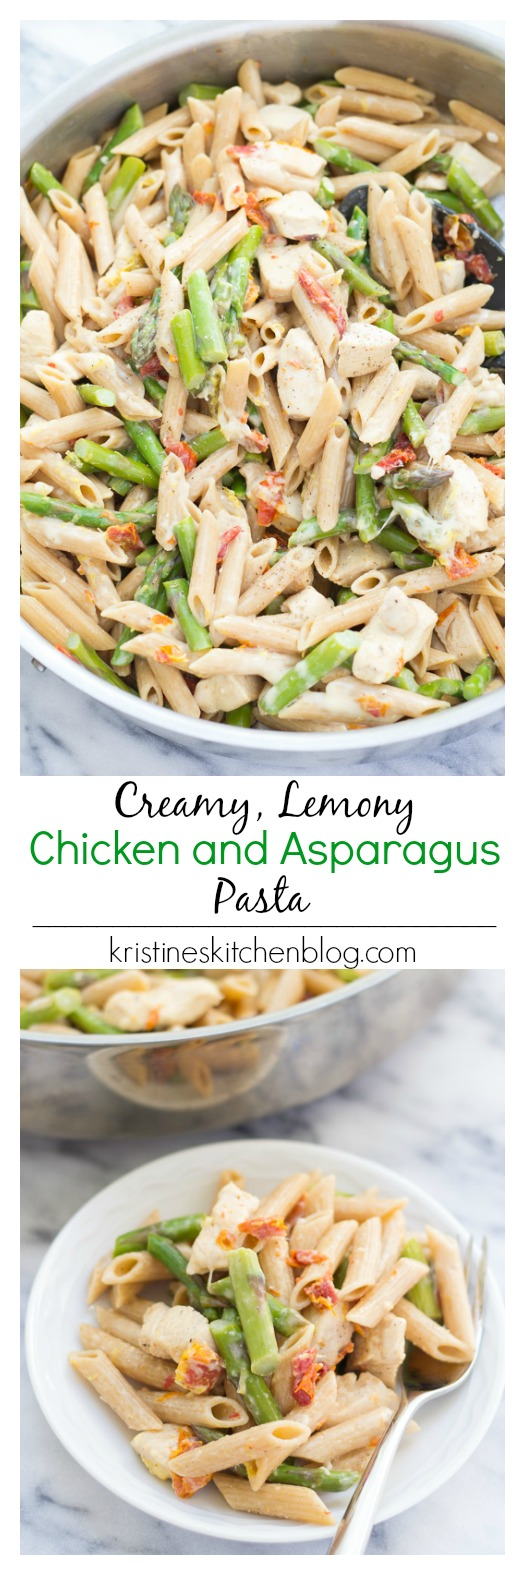 Creamy Lemony Pasta with Chicken and Asparagus - an easy one-pot ...